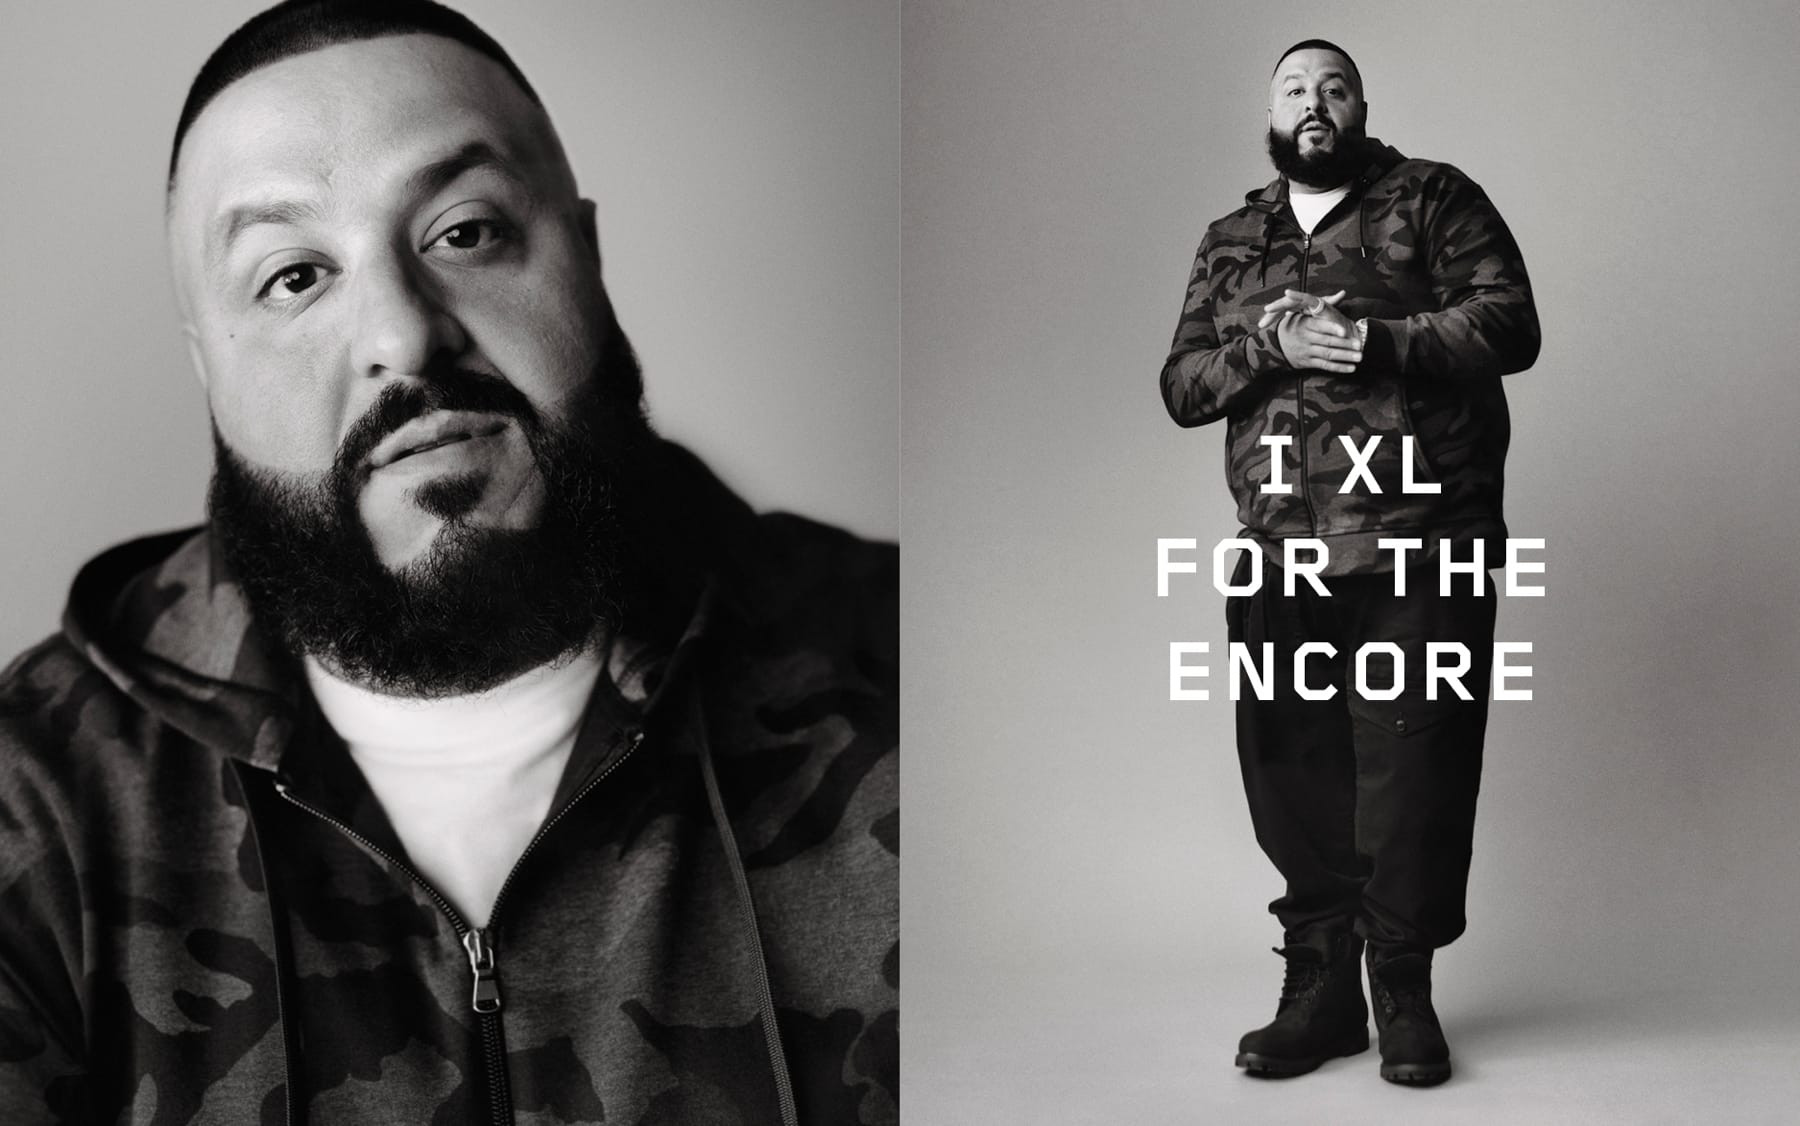 DJ Khaled | I XL FOR THE ENCORE